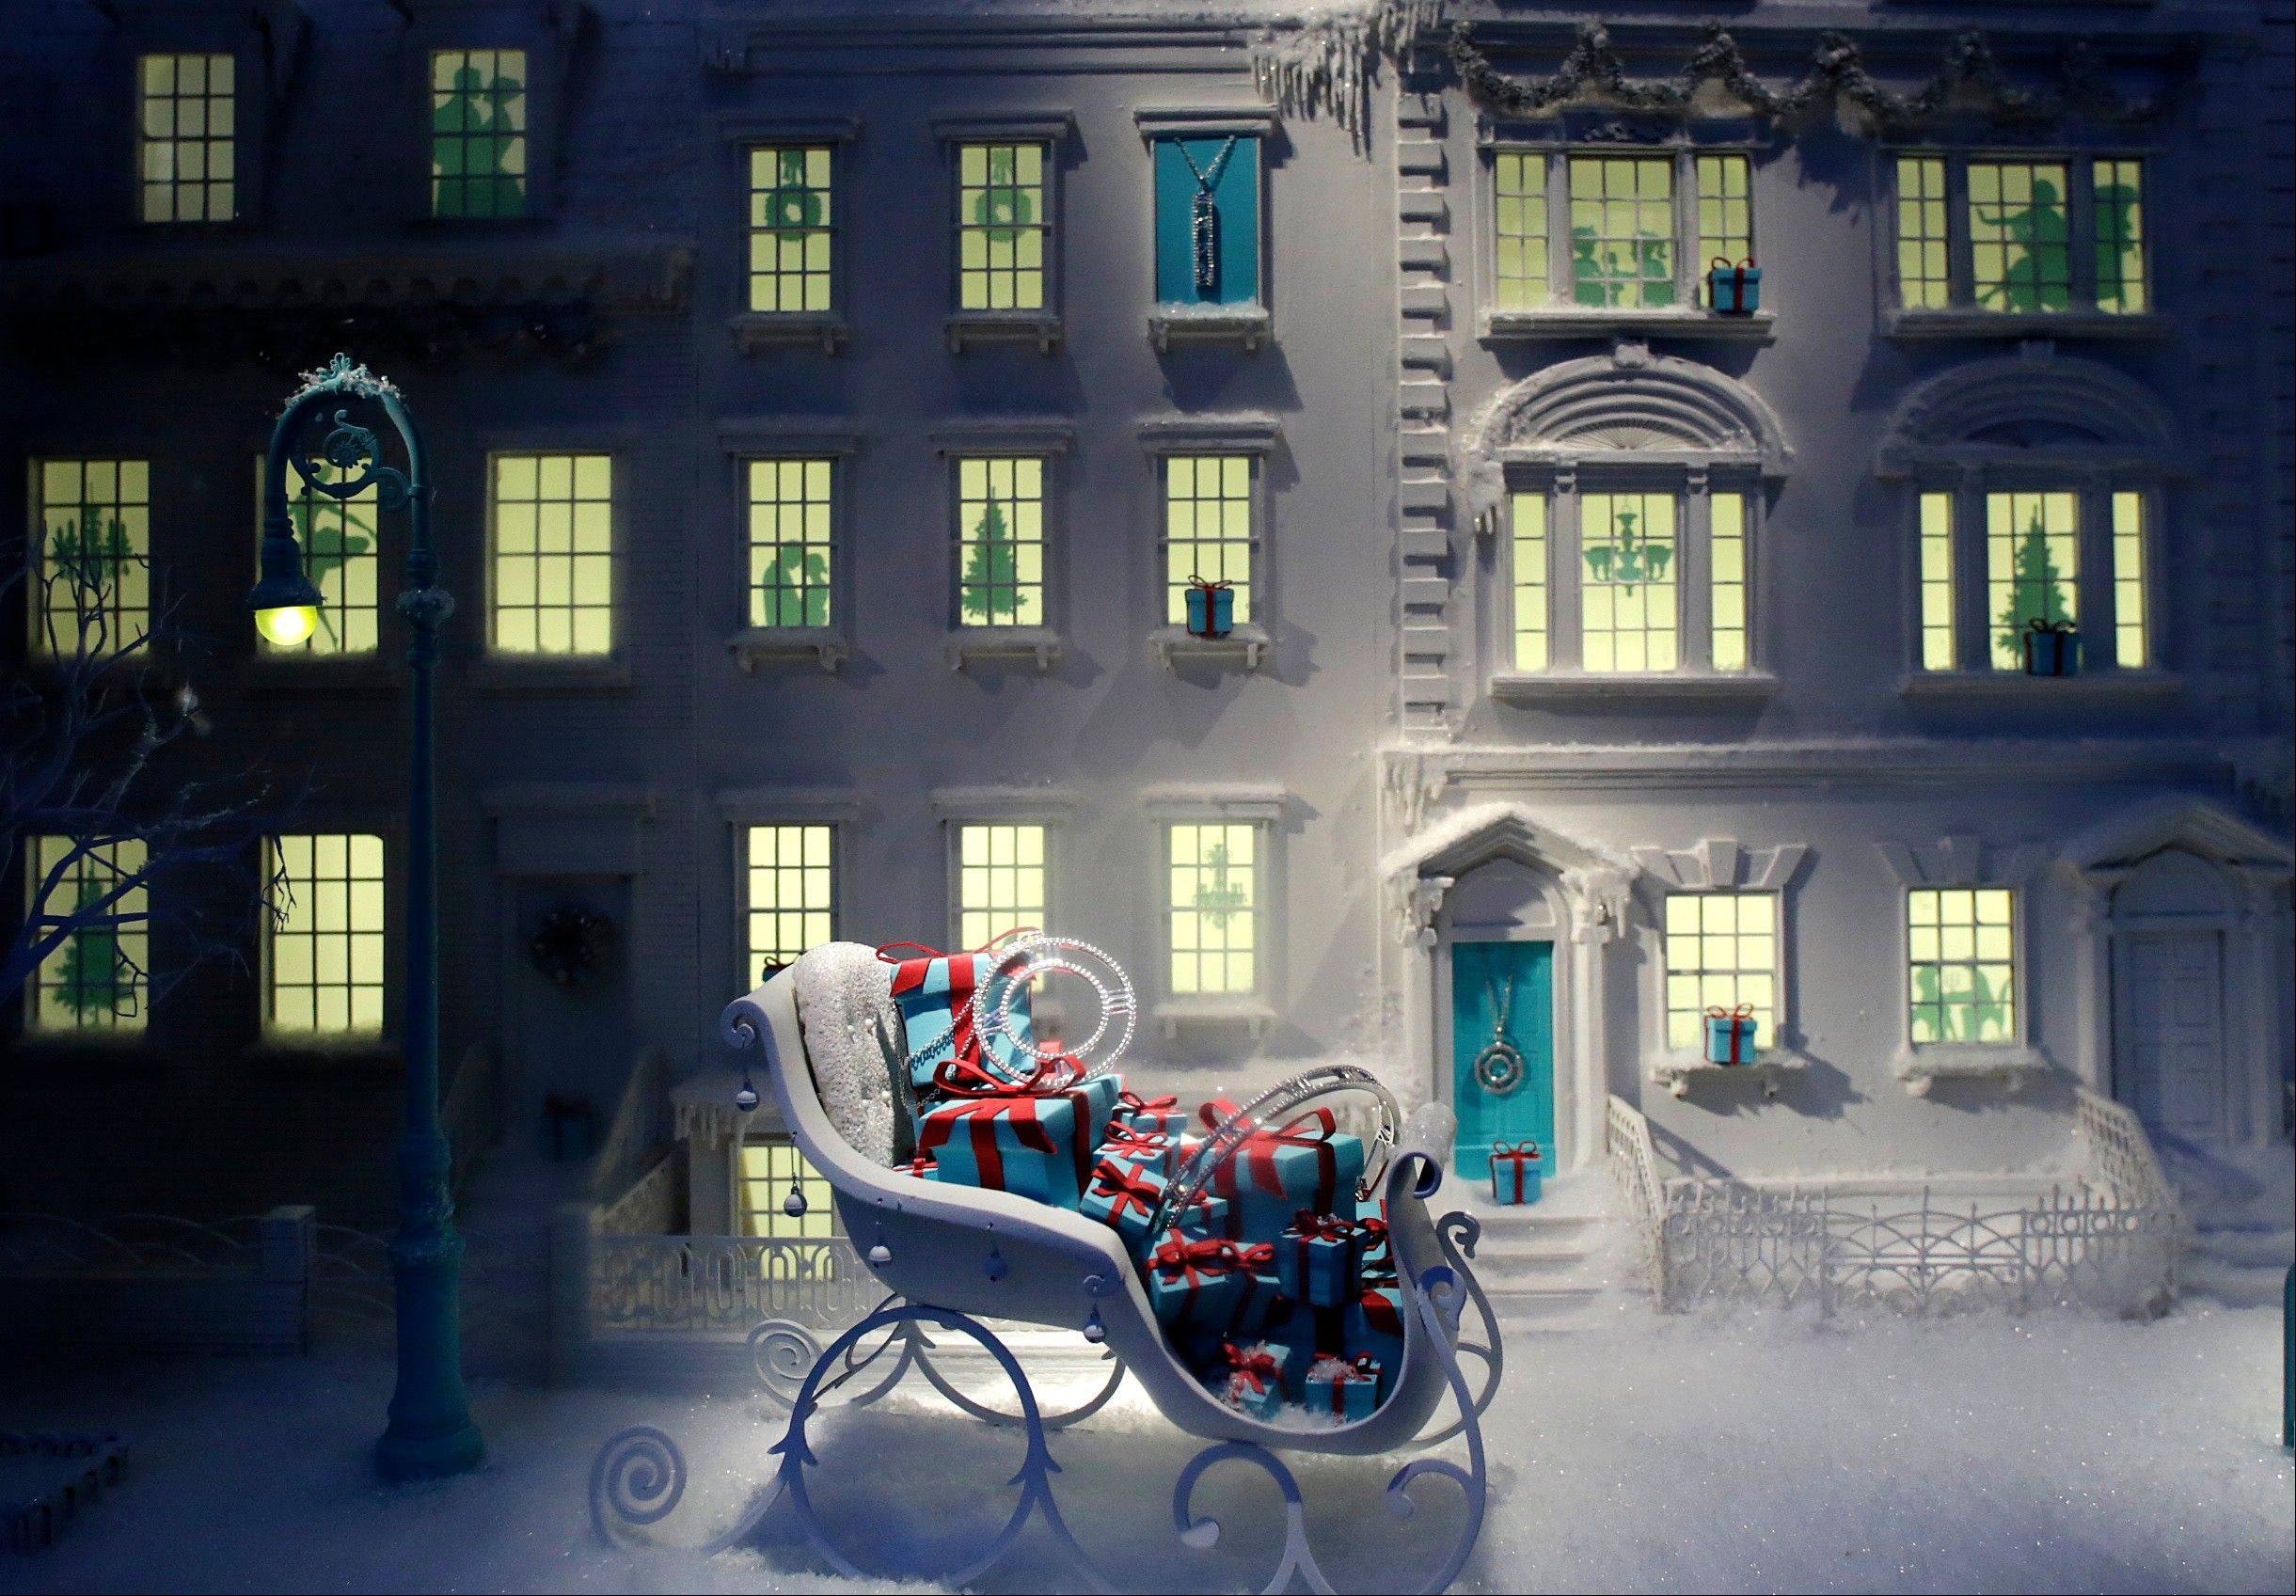 A sleigh filled with gift-wrapped jewelry boxes is displayed in a holiday window at Tiffany & Co. in New York. Reimagining every major holiday covered in a slick coating of ice, re-creating cozy Christmas-morning scenes and paying homage to a local legend can be an annual labor of love.